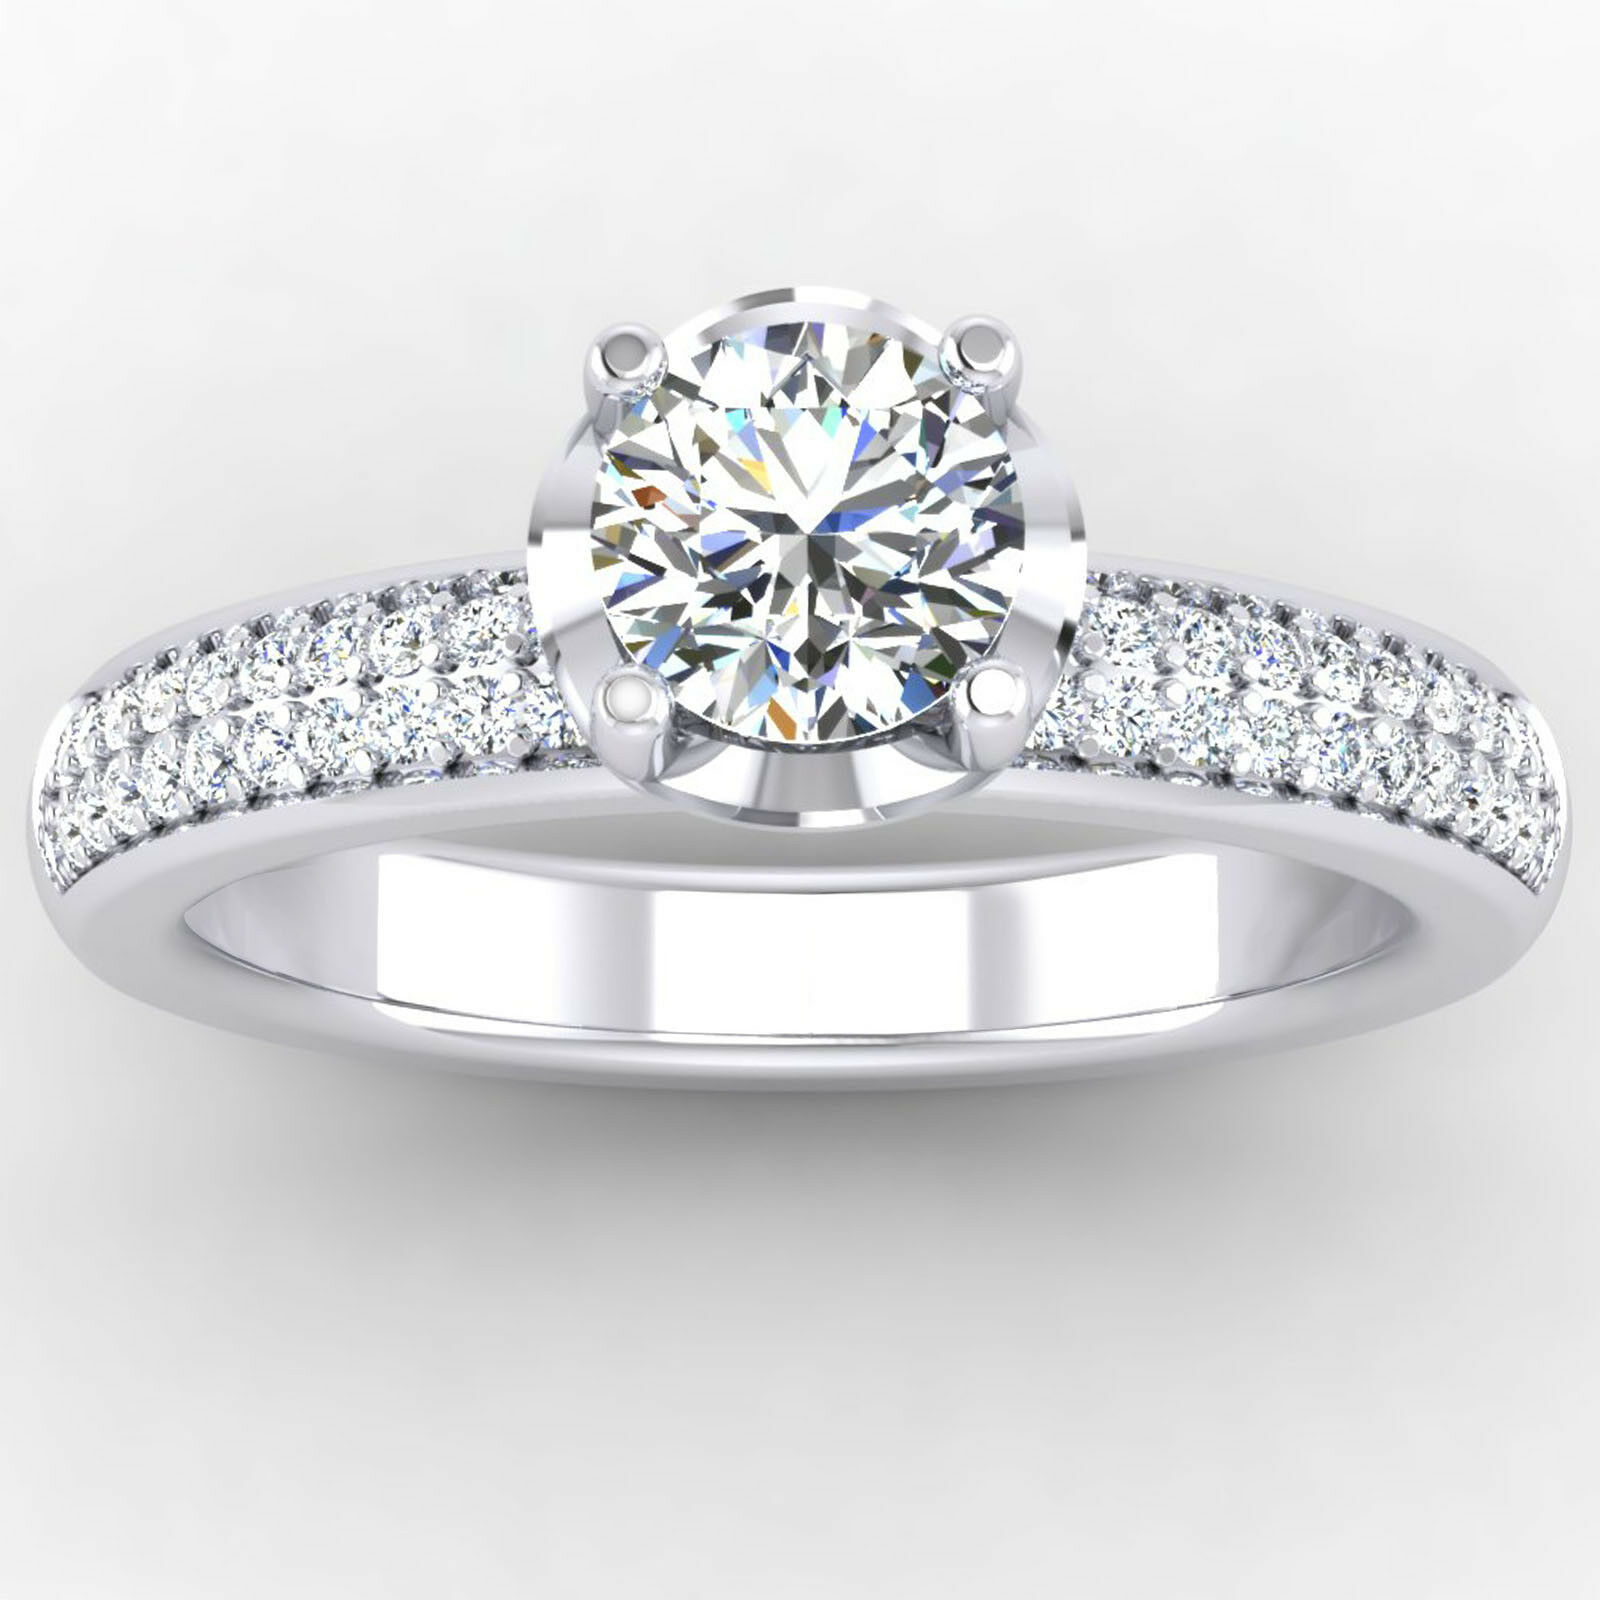 0.76 Ct Real VS1 Diamond Engagement Ring Round Cut 14K Solid White gold Size 8